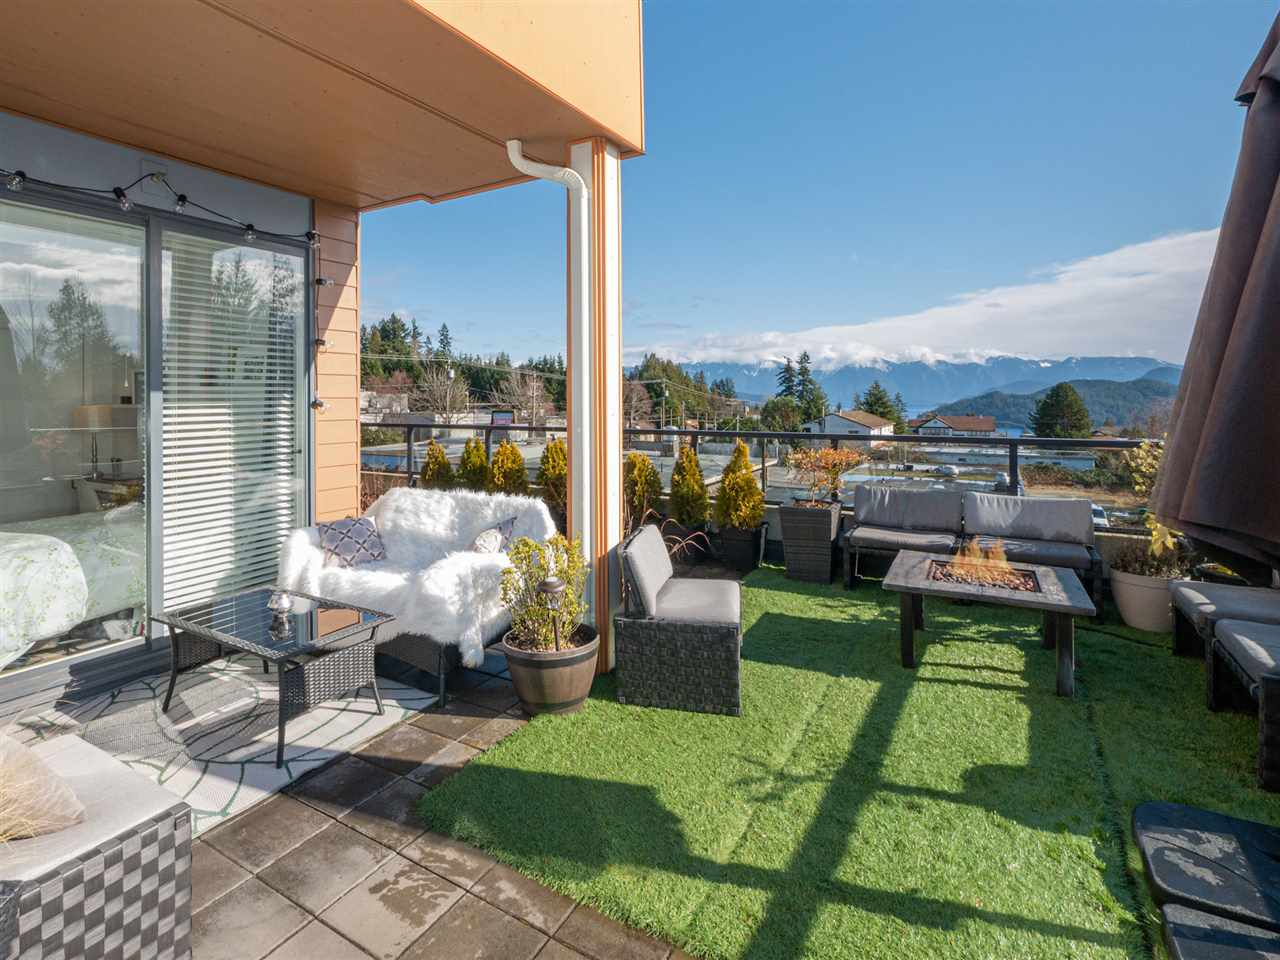 210 210 875 GIBSONS WAY - Gibsons & Area Apartment/Condo for sale, 2 Bedrooms (R2542139) - #1